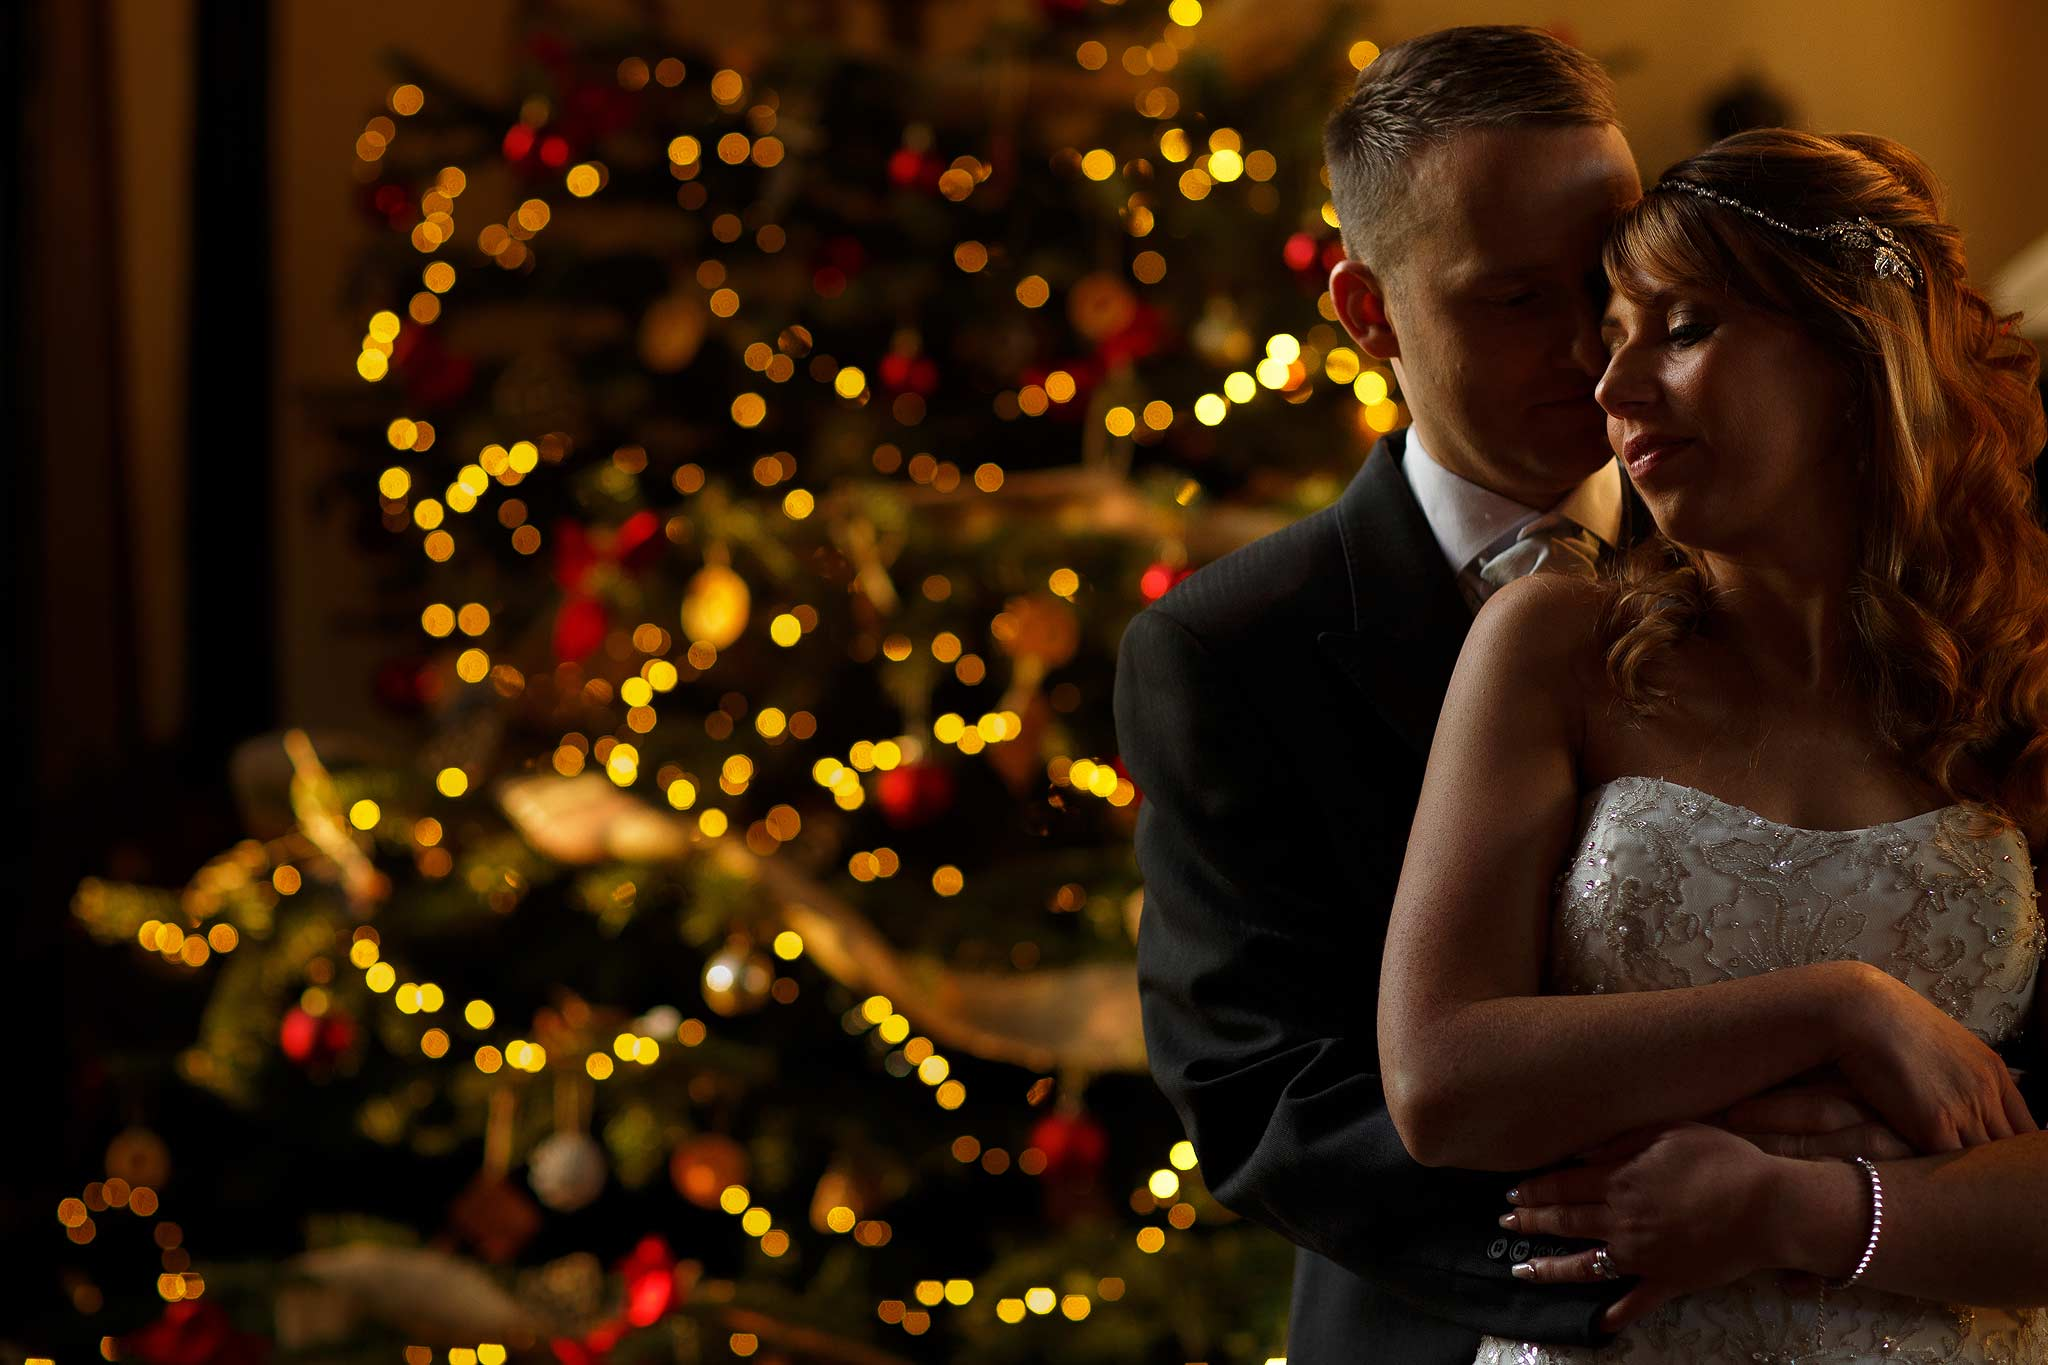 Photograph of a bride and groom in front of the christmas tree at Samlesbury Hall